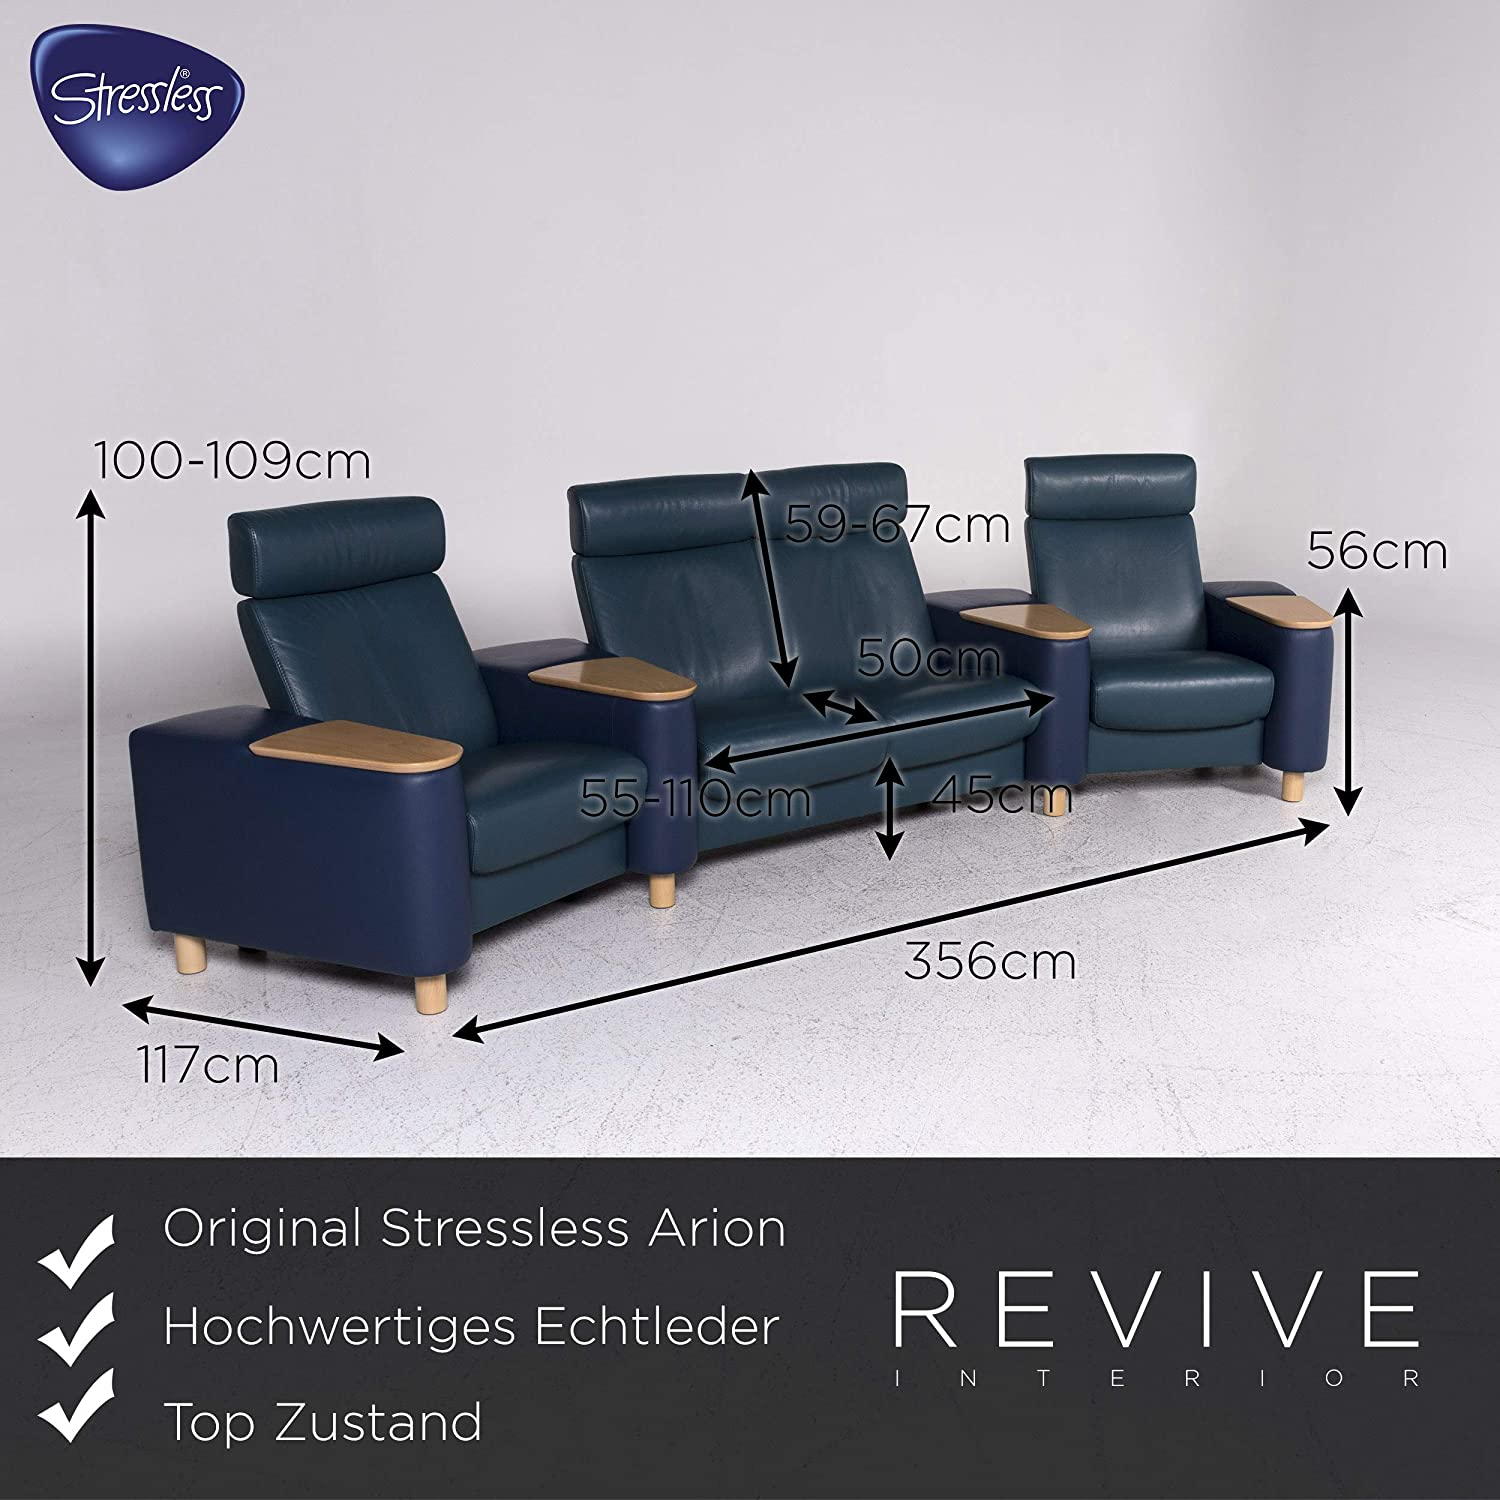 Stressless Arion Designer Leather Sofa Set Blue Petrol 1x ...